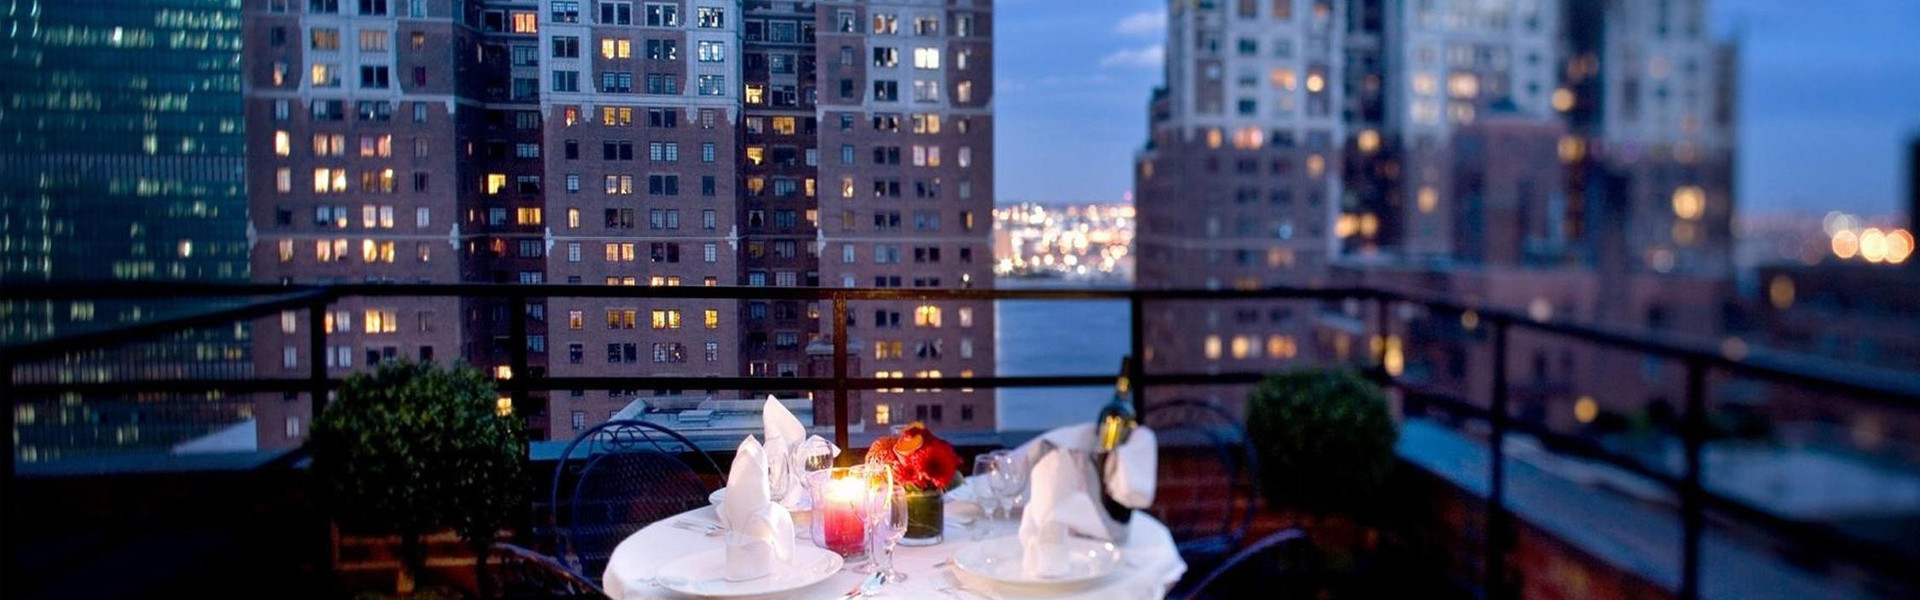 Airline Employee Discount Hotel Rates In NYC   -